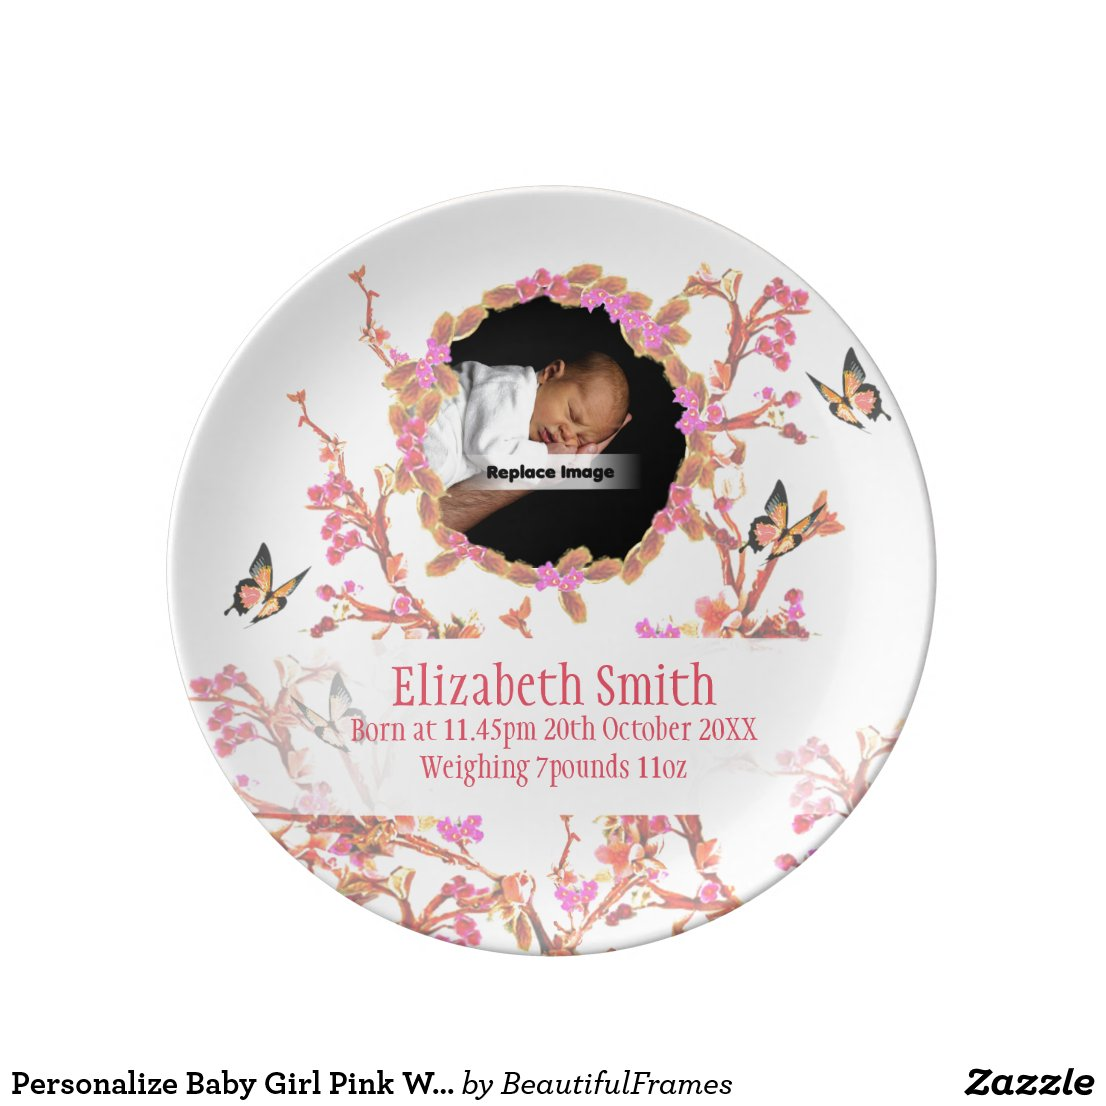 Personalise Baby Girl Plate